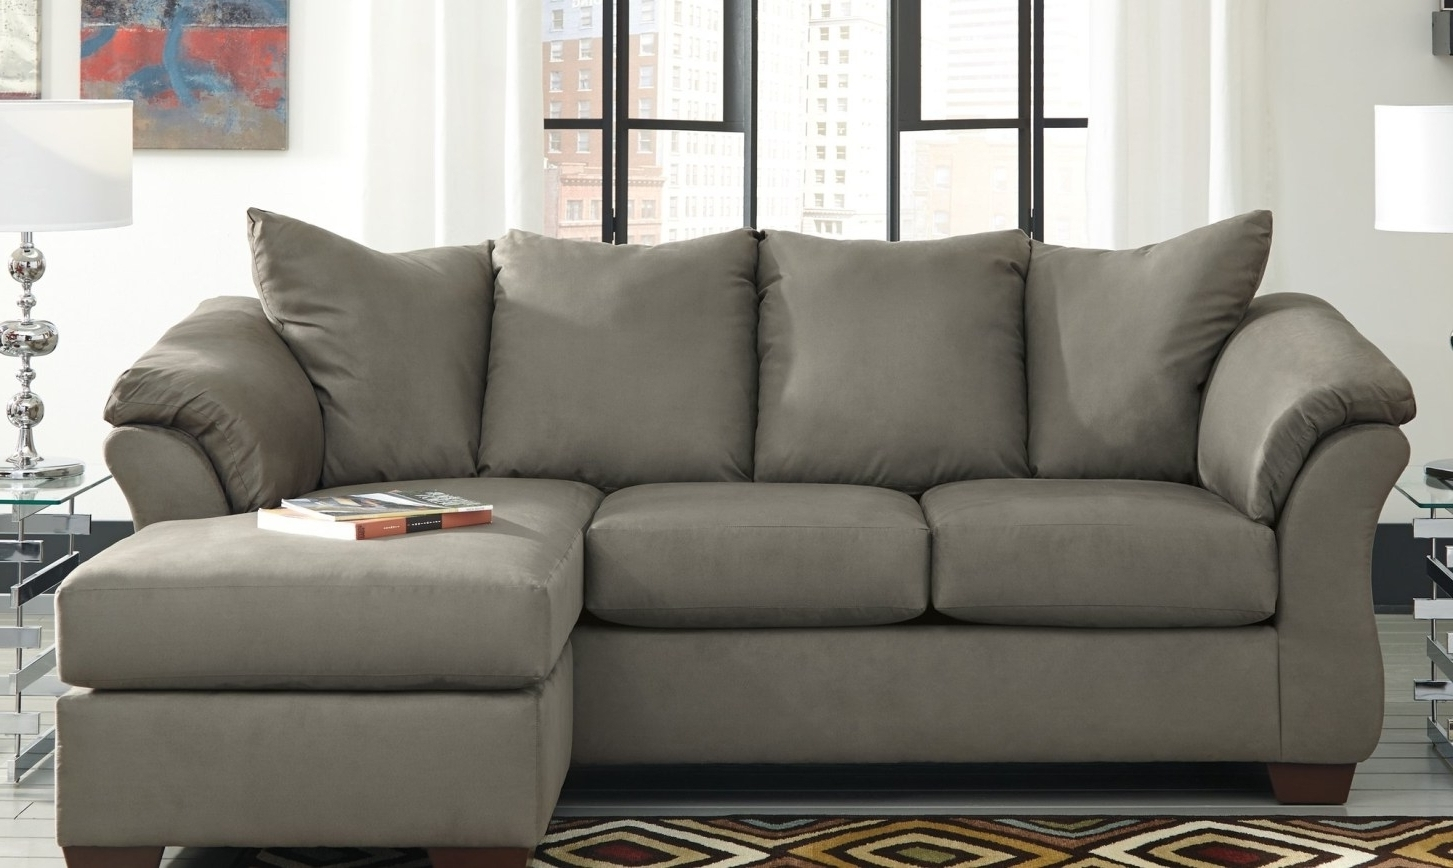 Incredible Abbyson Living Charlotte Dark Brown Sectional Sofa And Within Trendy Charlotte Sectional Sofas (View 9 of 15)